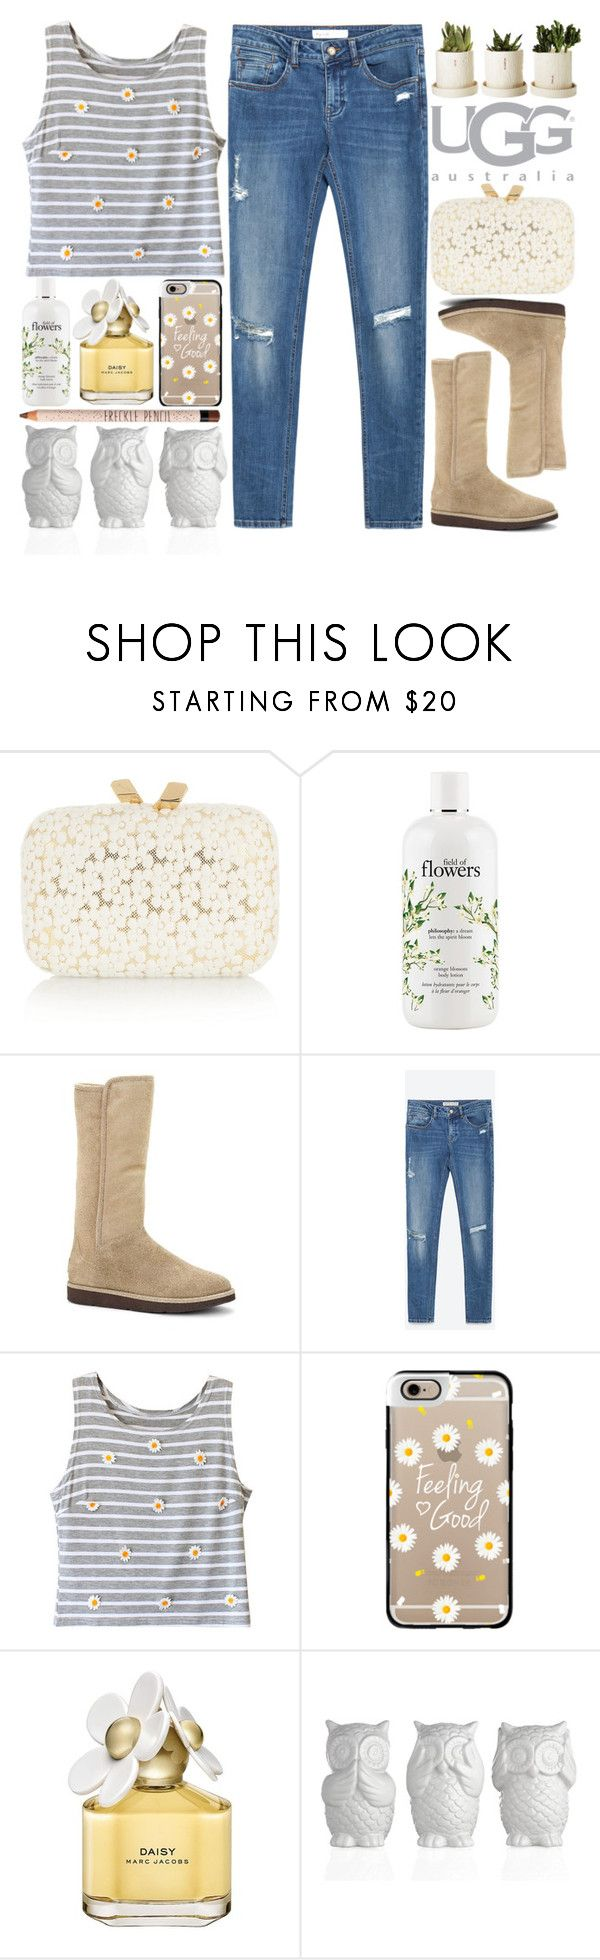 """The Way: Contest Entry"" by puppies241 ❤ liked on Polyvore featuring KOTUR, UGG Australia, philosophy, Zara, Casetify, Marc Jacobs, floral, autumn and uggaustralia"